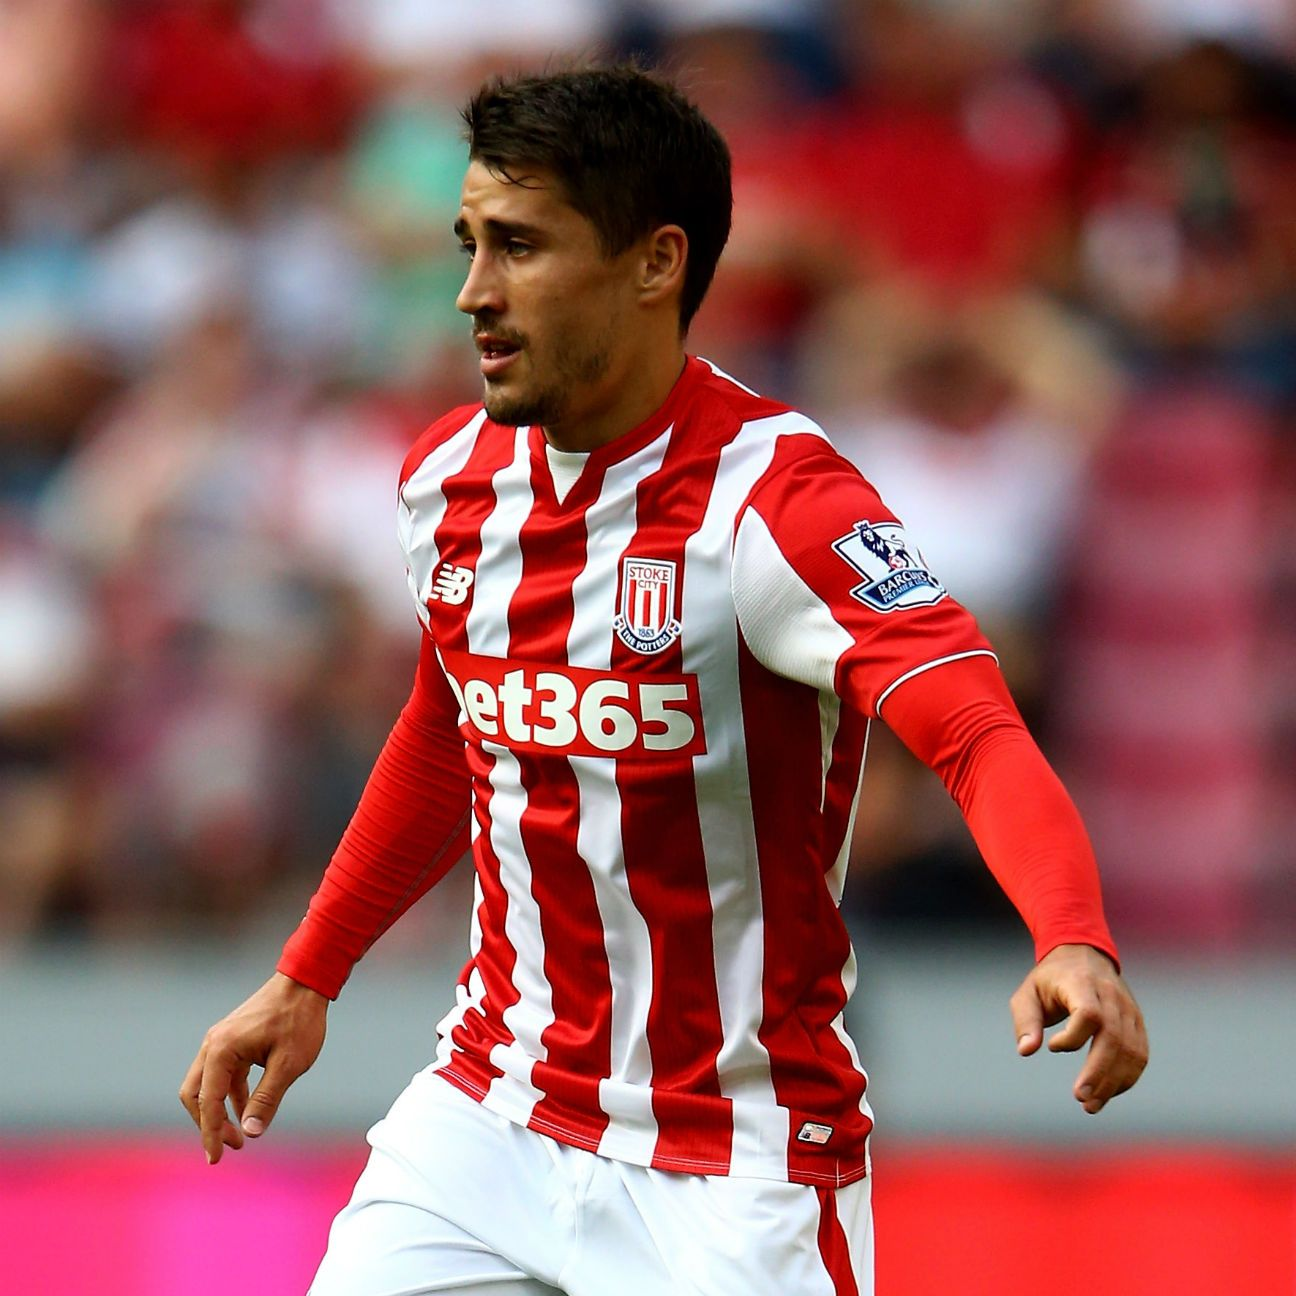 With just three goals through five matches, Stoke could use the help of Bojan to kickstart the team's attack.